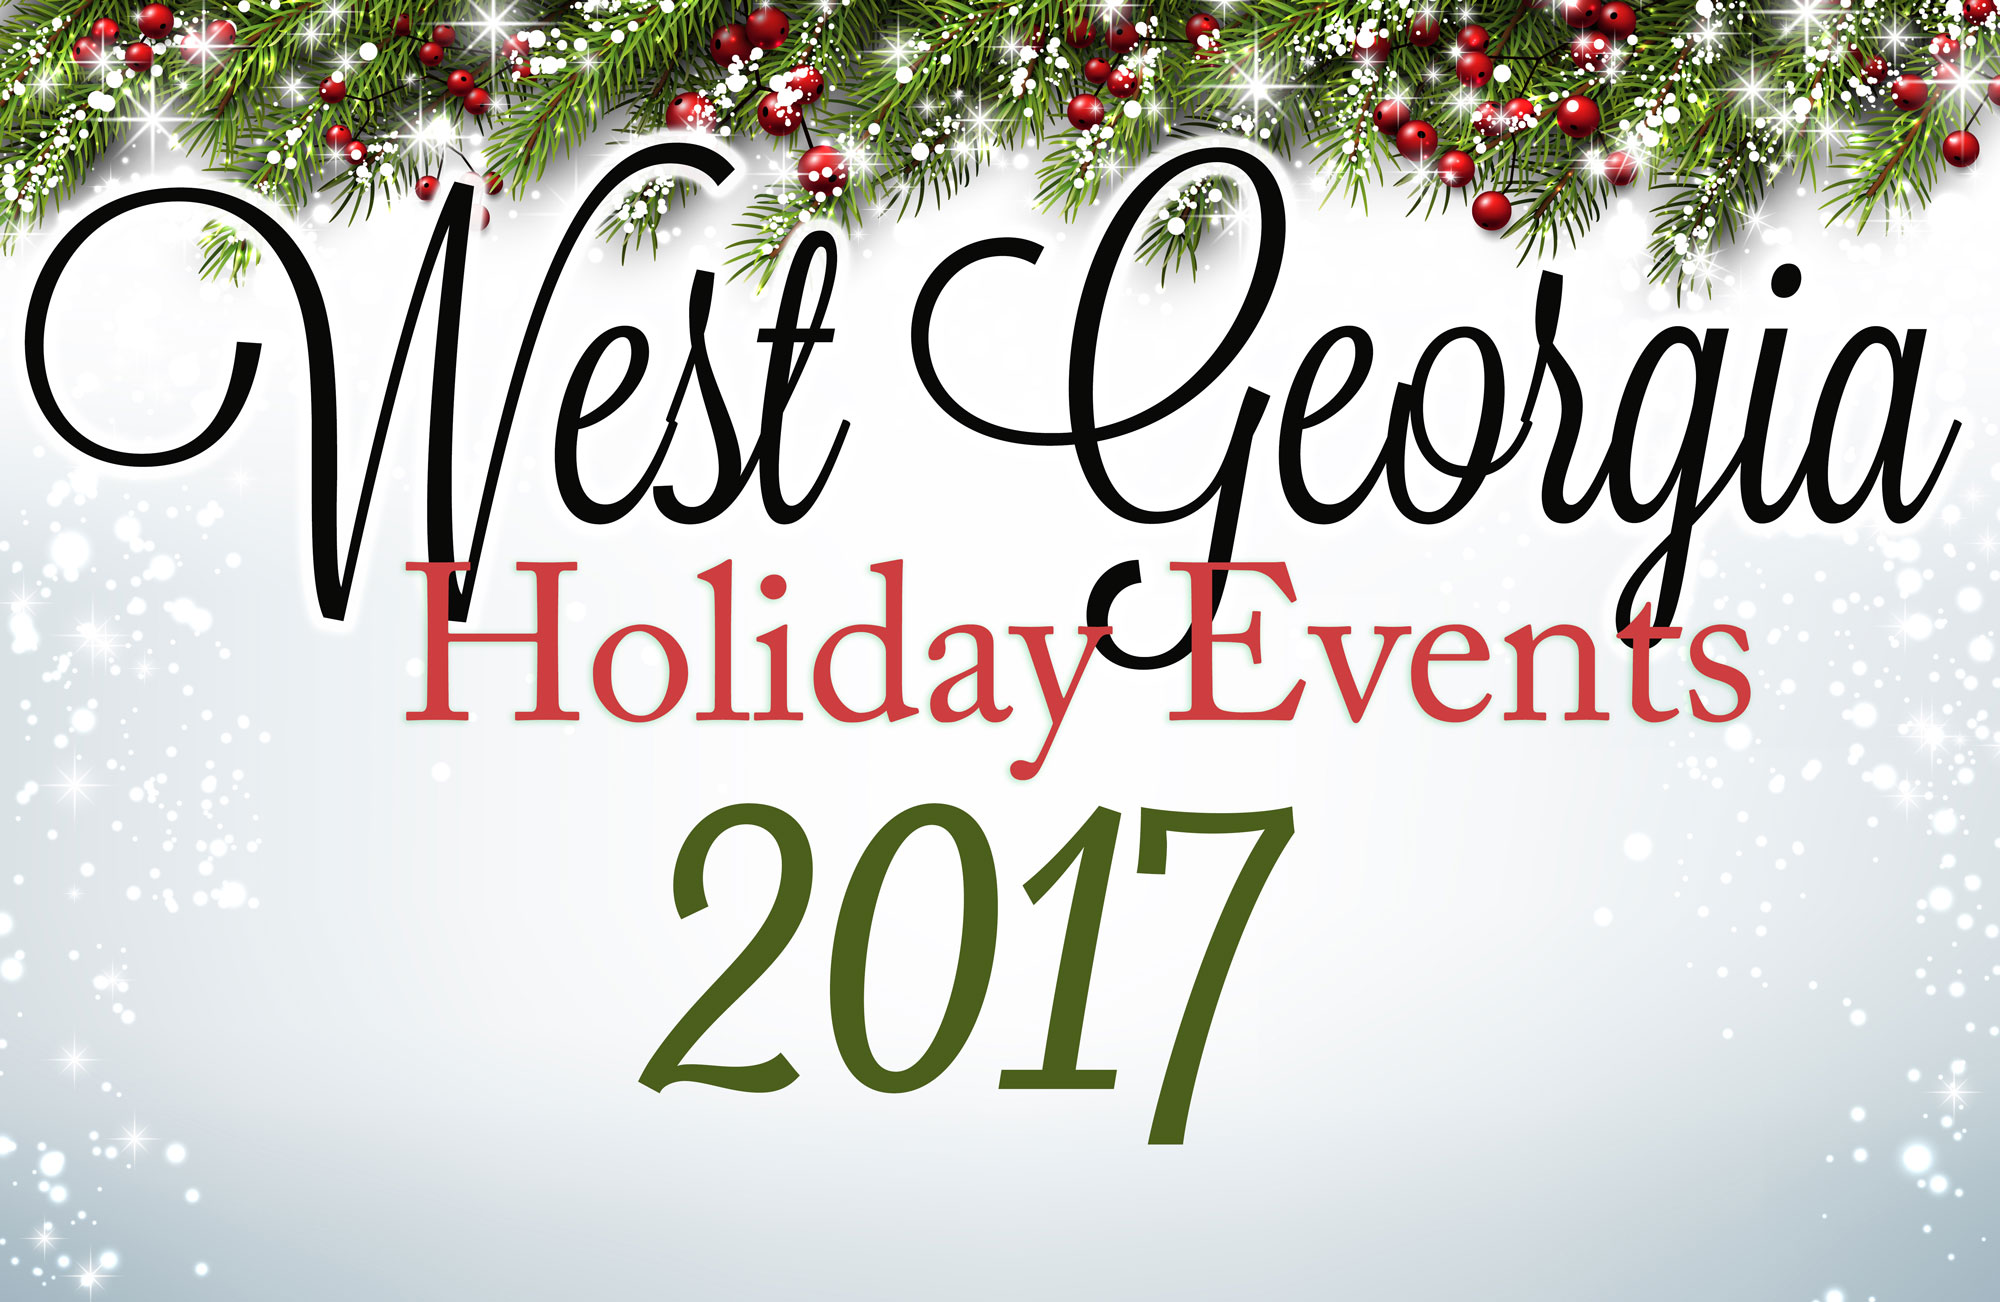 West Georgia Holiday Events 2017 - News & Views